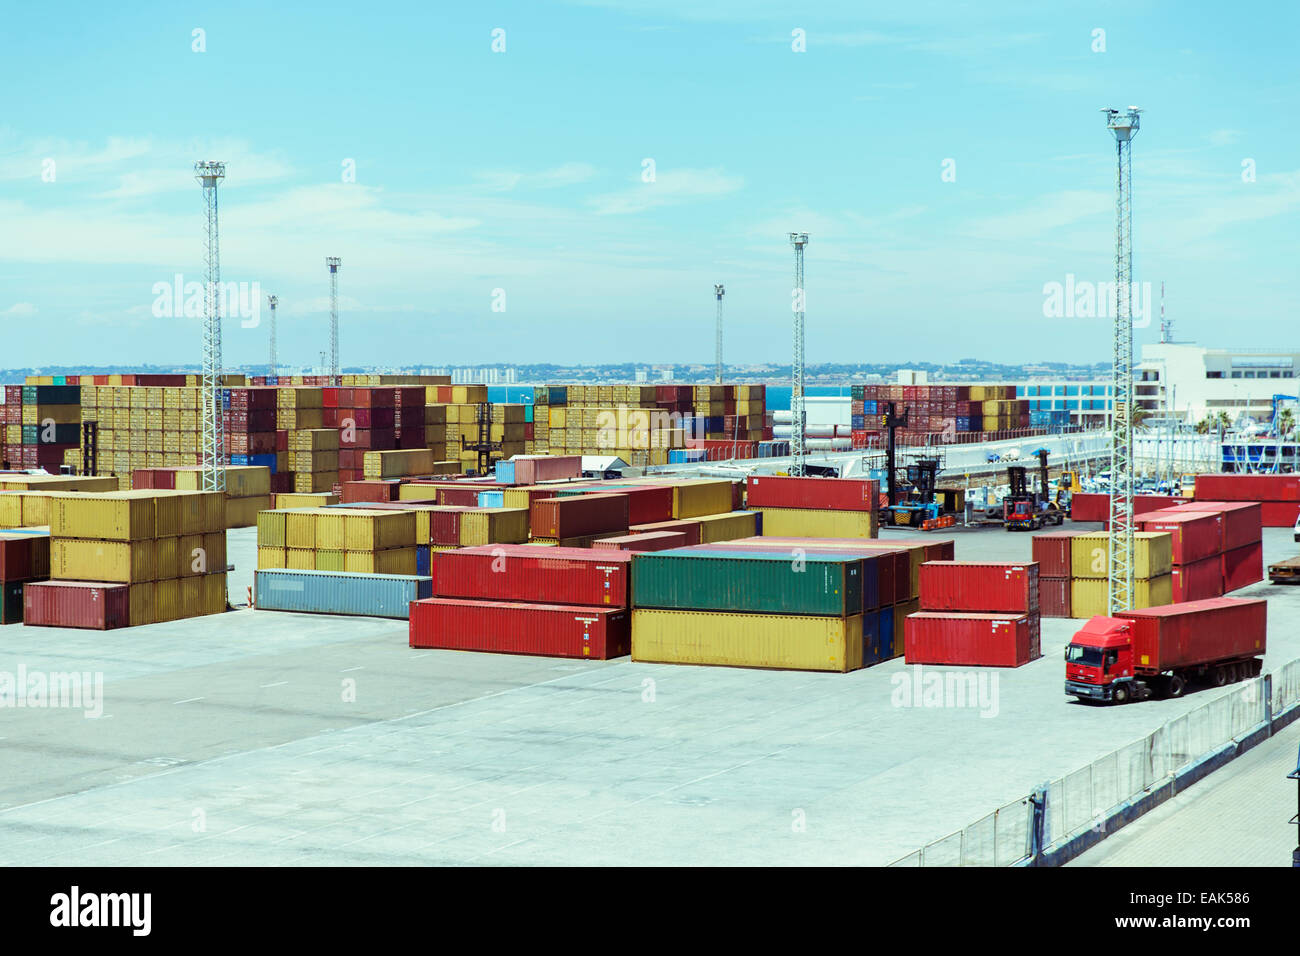 Cargo containers and truck - Stock Image